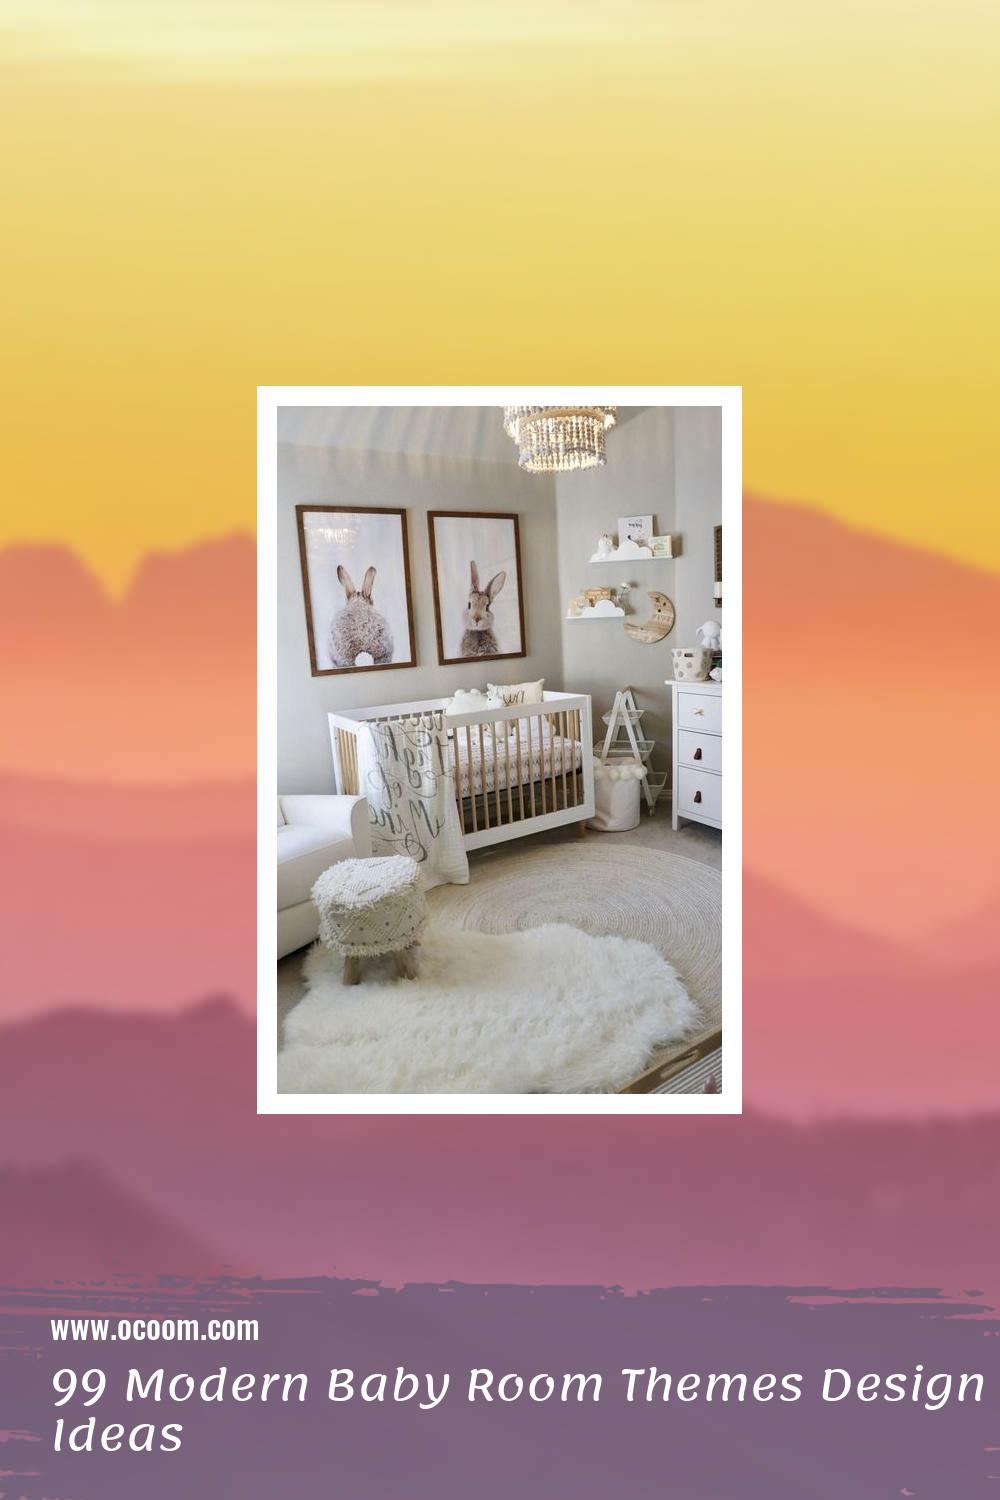 99 Modern Baby Room Themes Design Ideas 1